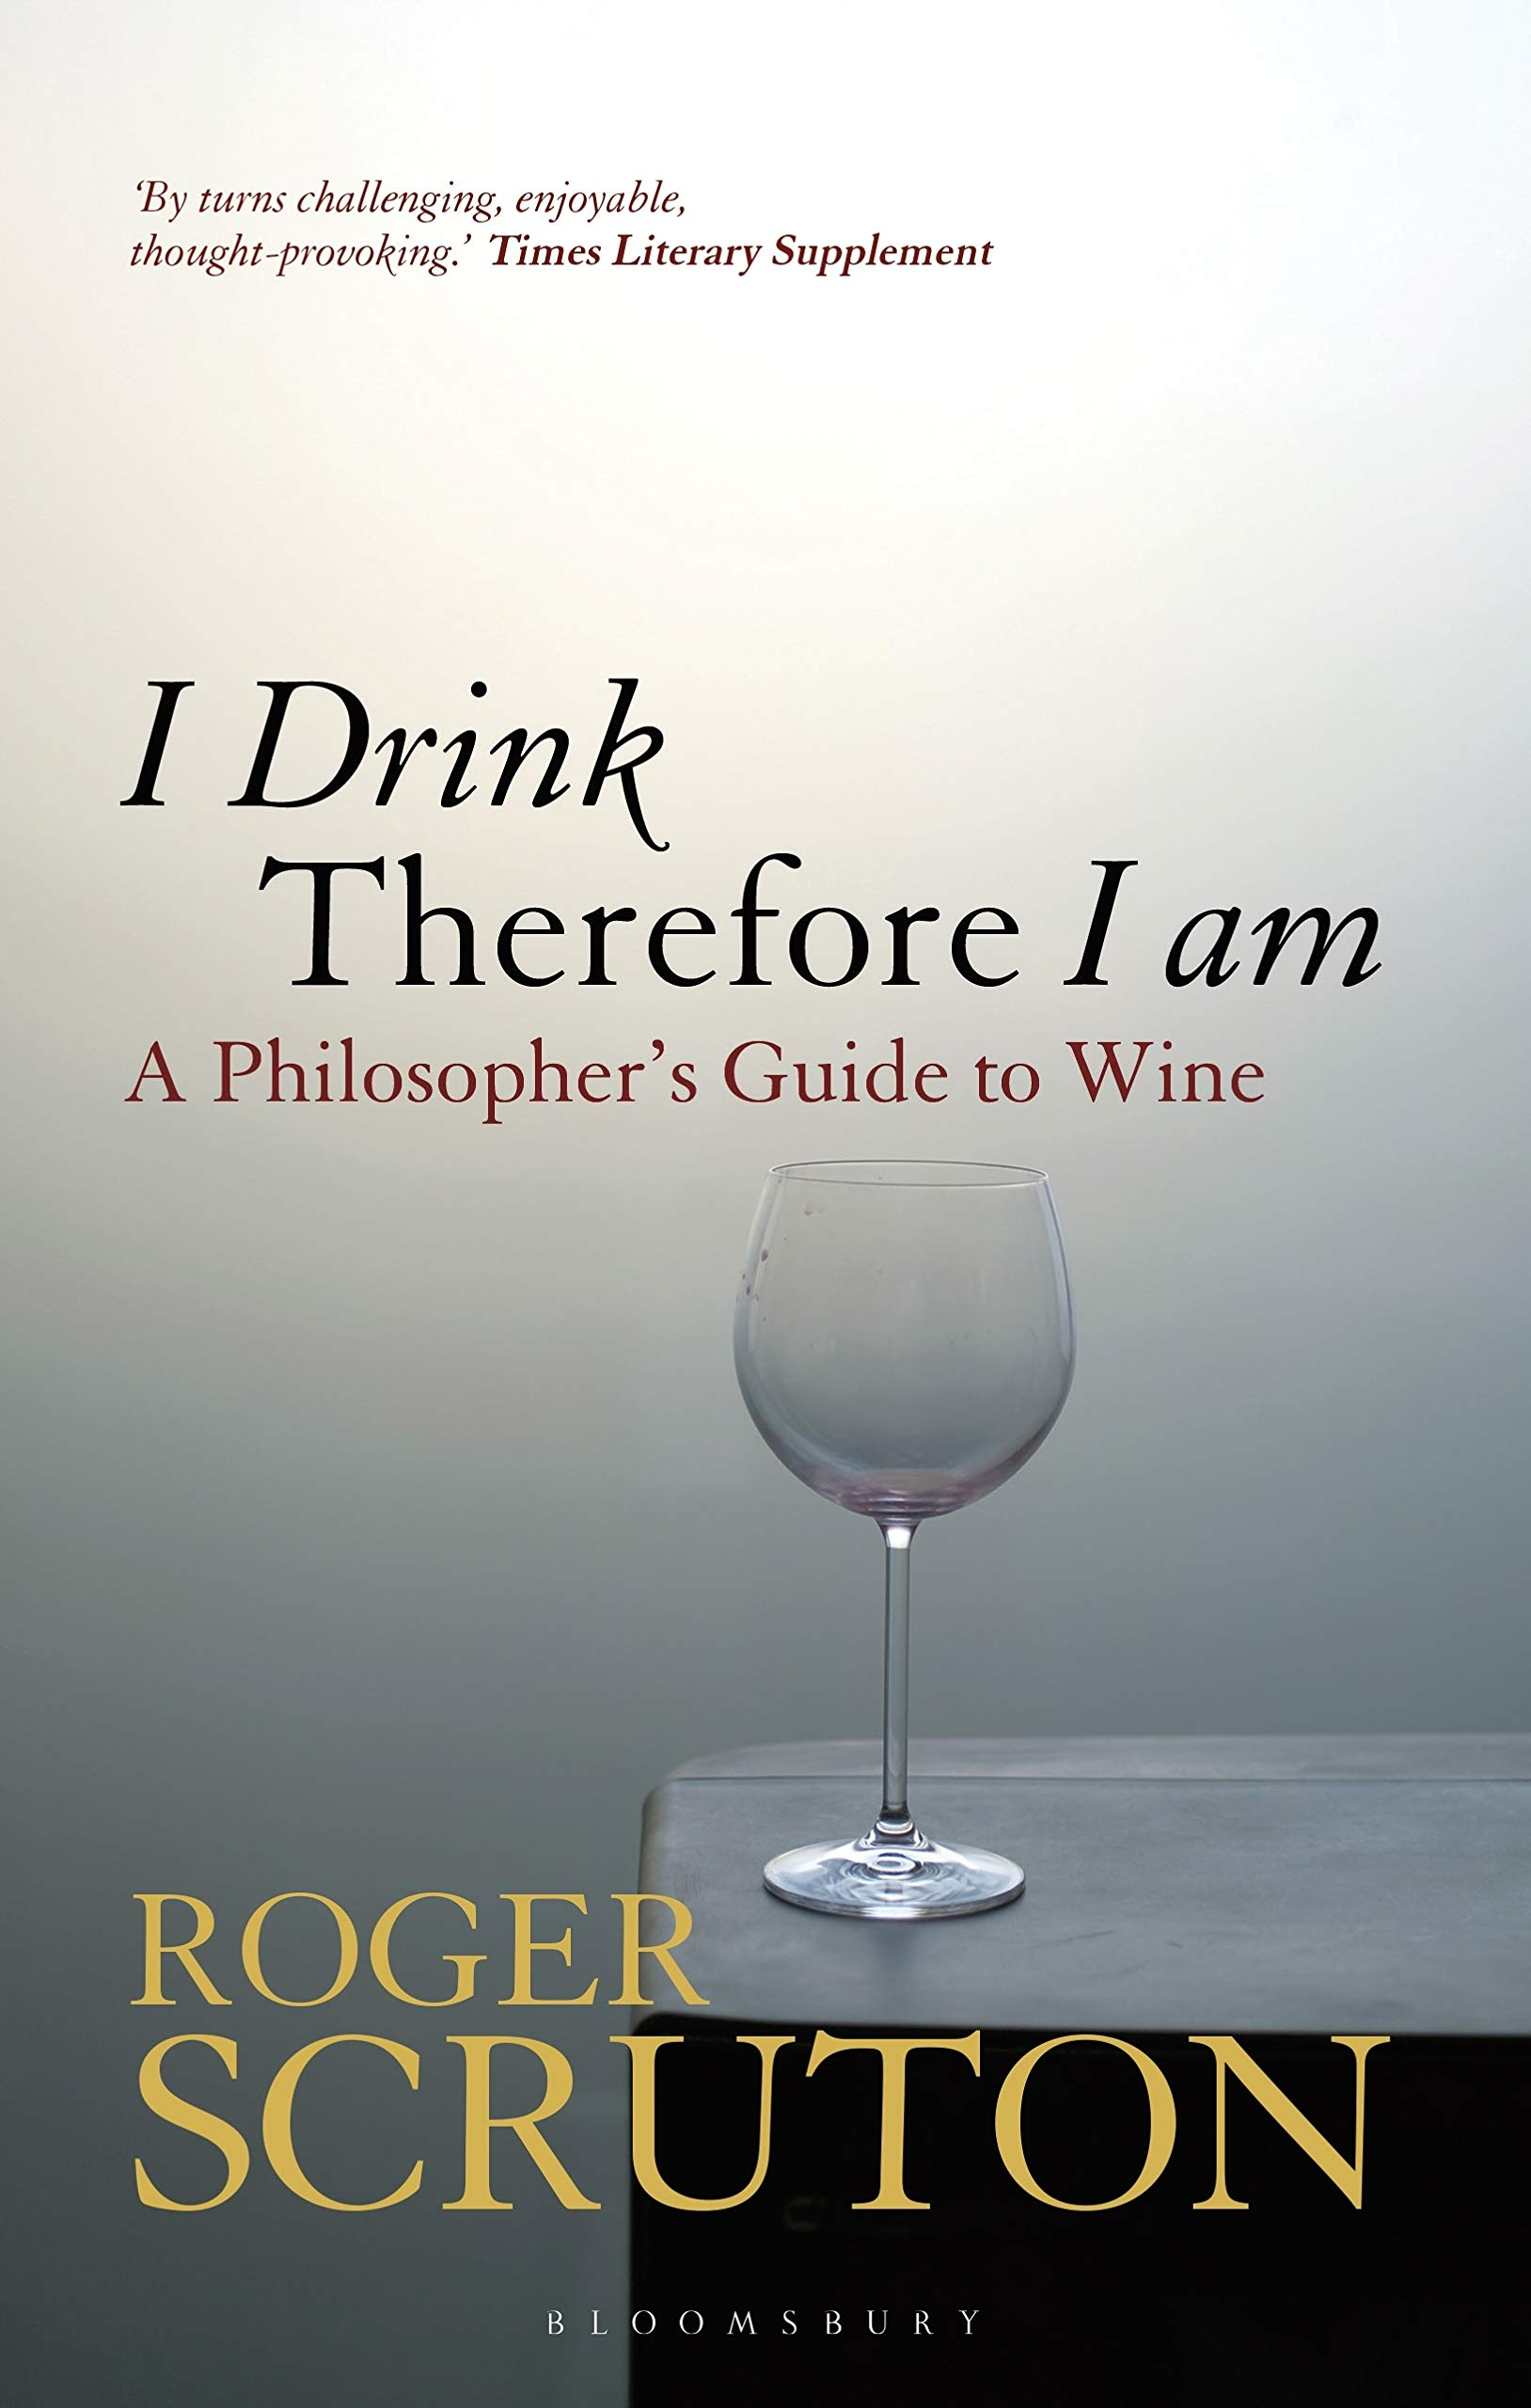 I Drink Therefore I Am: A Philosopher's Guide to Wine thumbnail